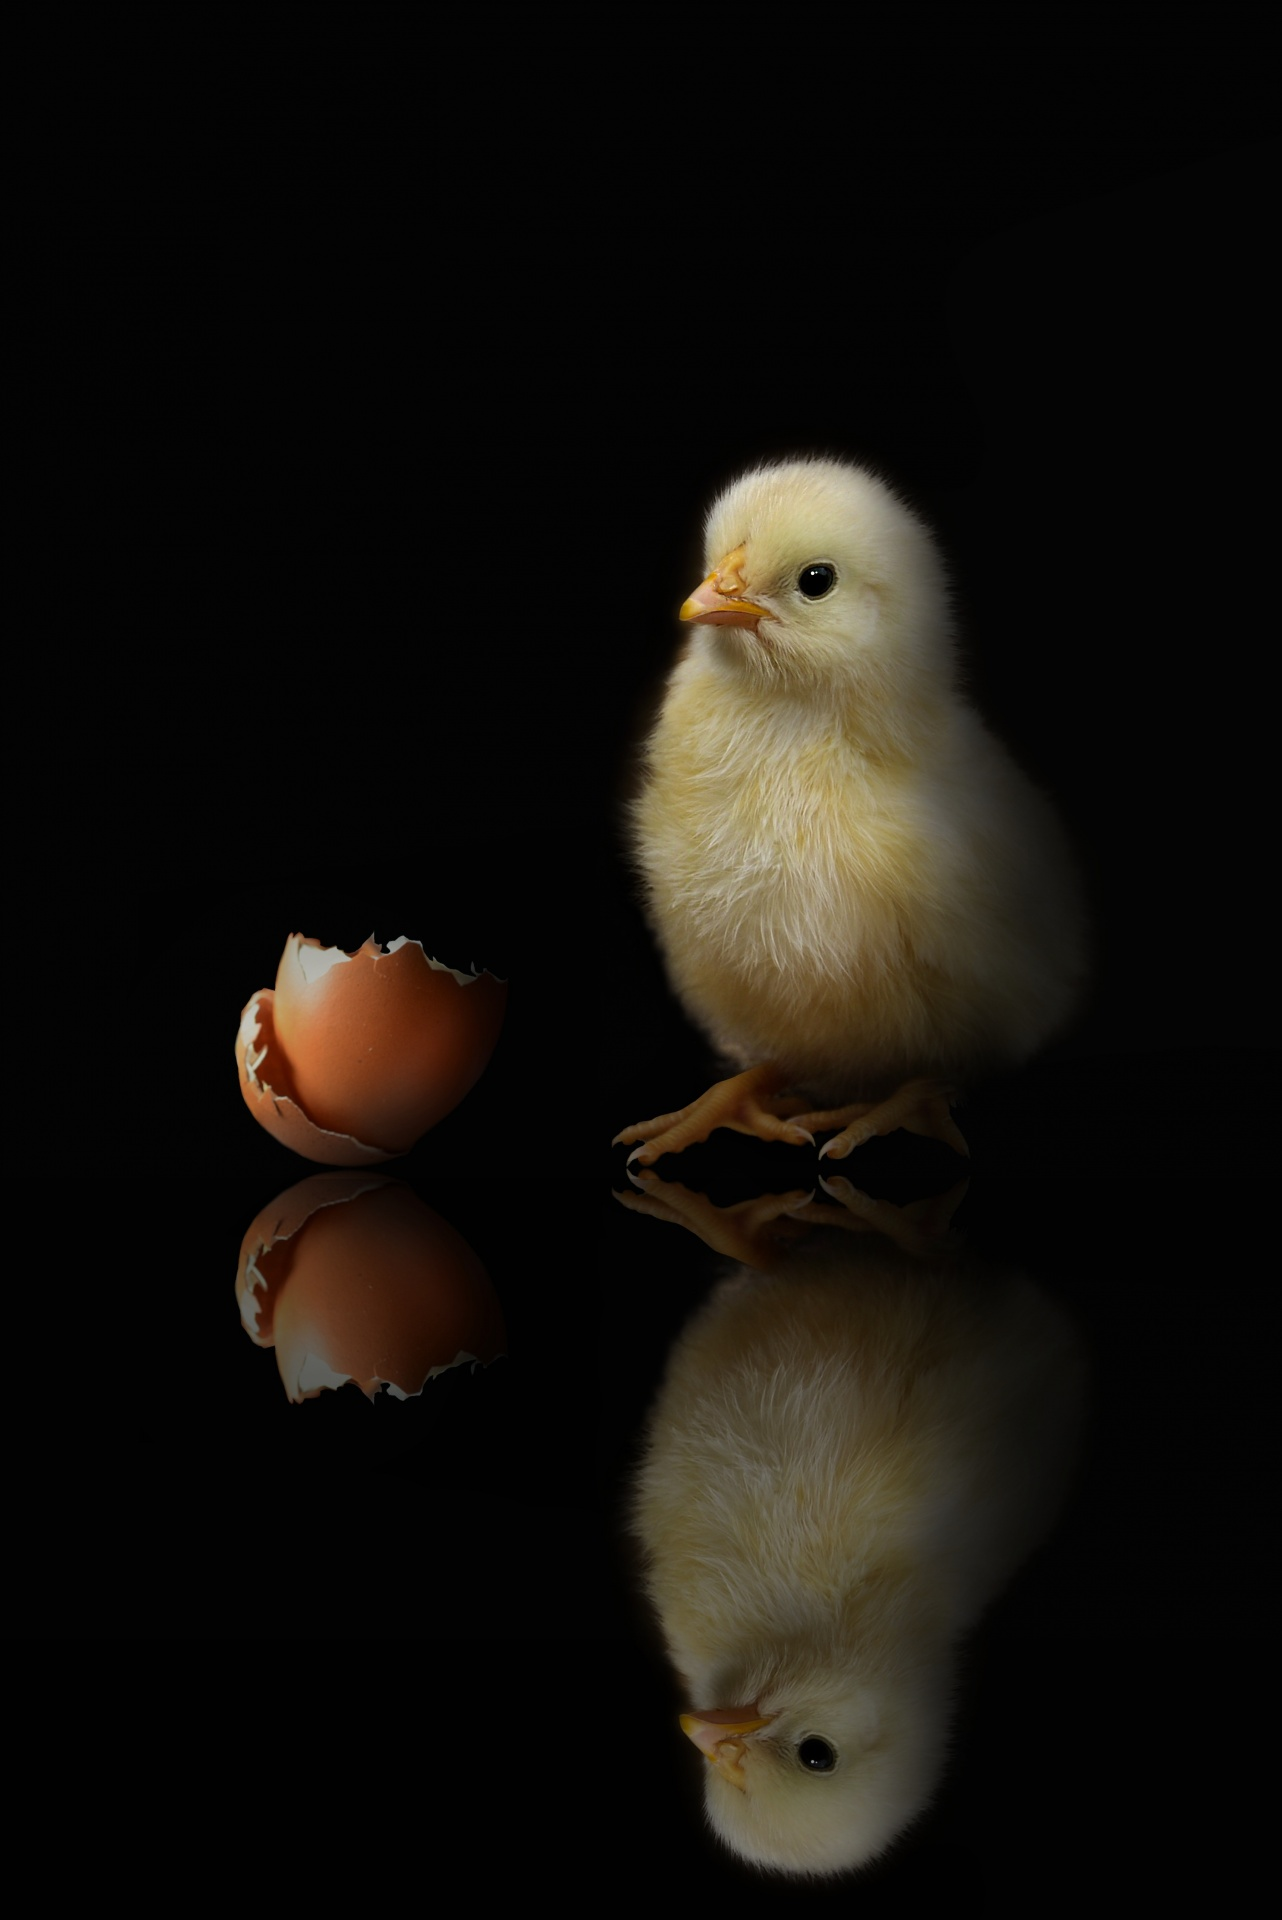 Yellow Cute Wallpaper Chick And Shell Black Background Free Stock Photo